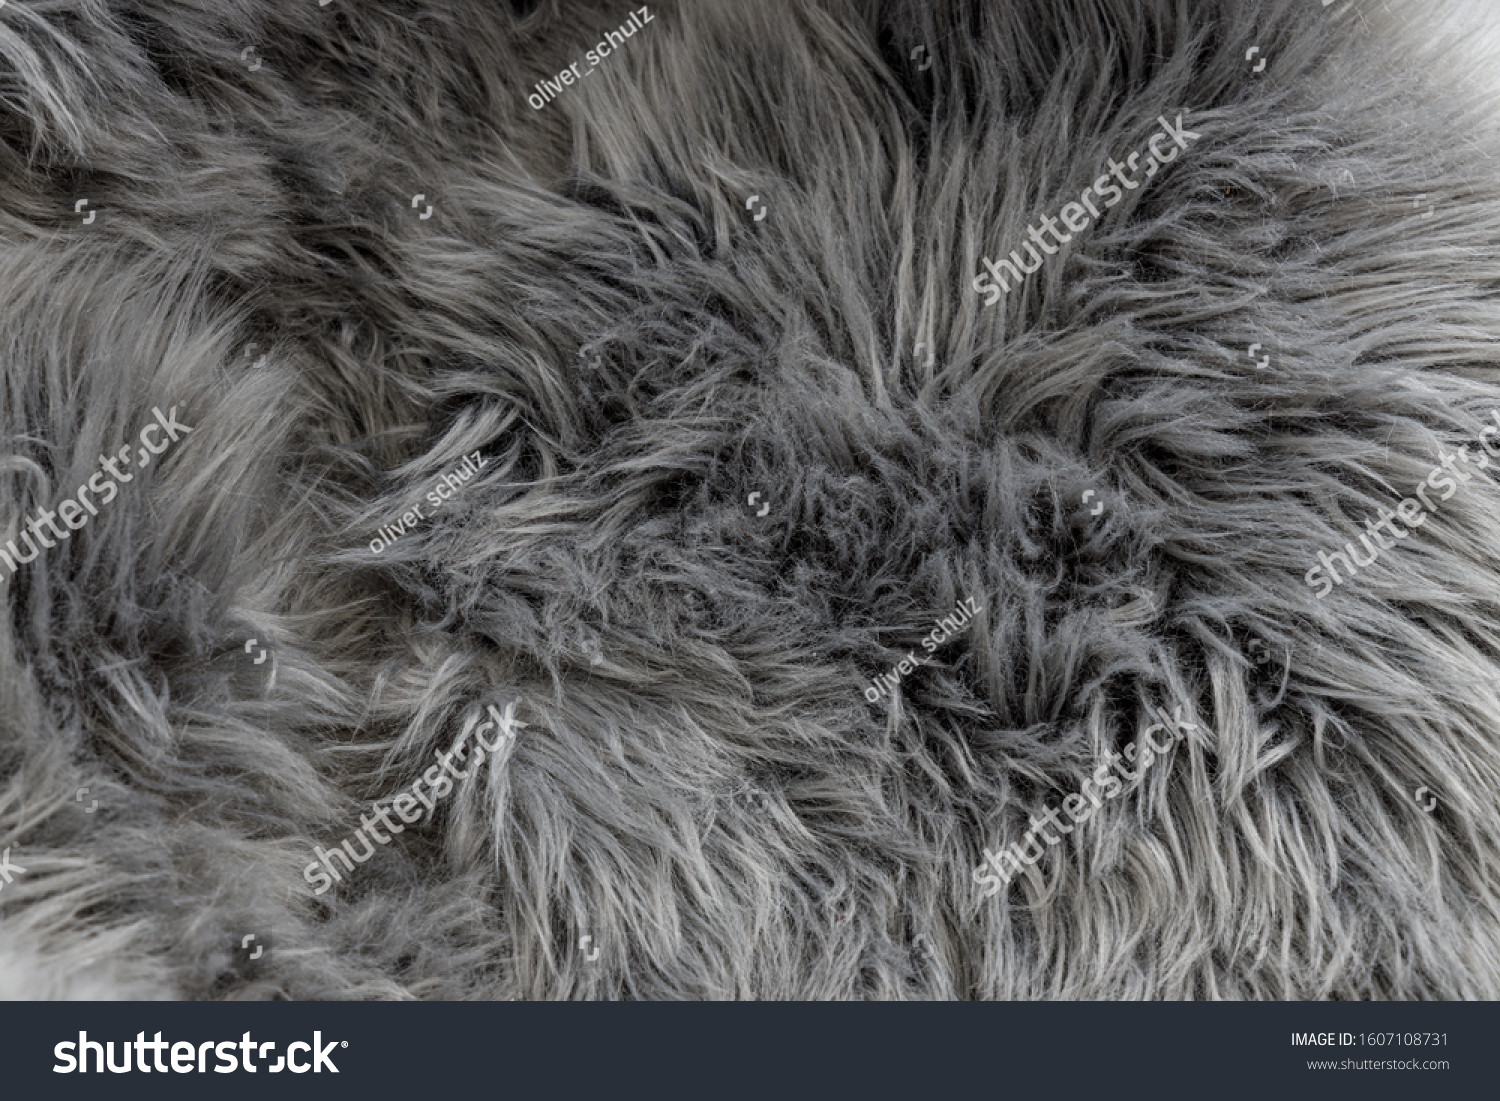 stock photo grey long fluffy fur in neutral light condition as background wallpaper